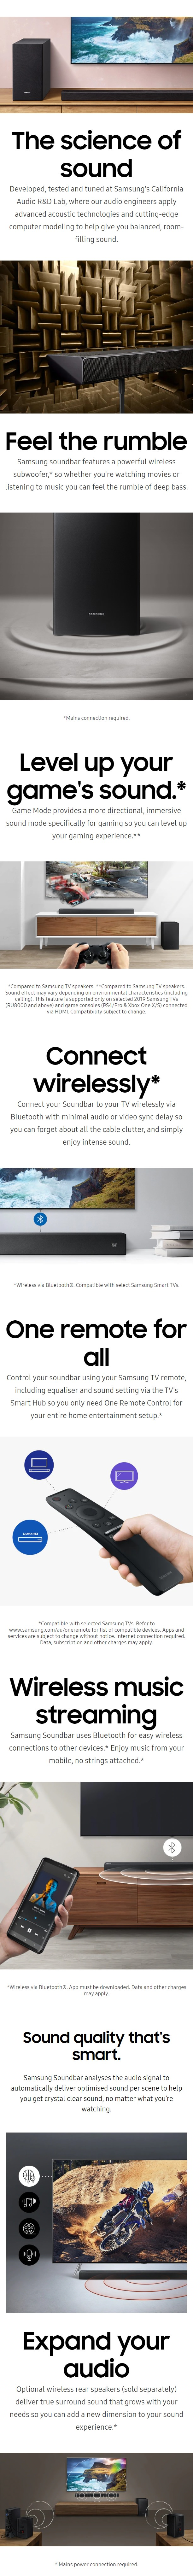 Details about SAMSUNG HW-R450/XY 2 1 CHANNEL SOUNDBAR + WIRELESS SUBWOOFER  DOLBY DIGITAL DTS